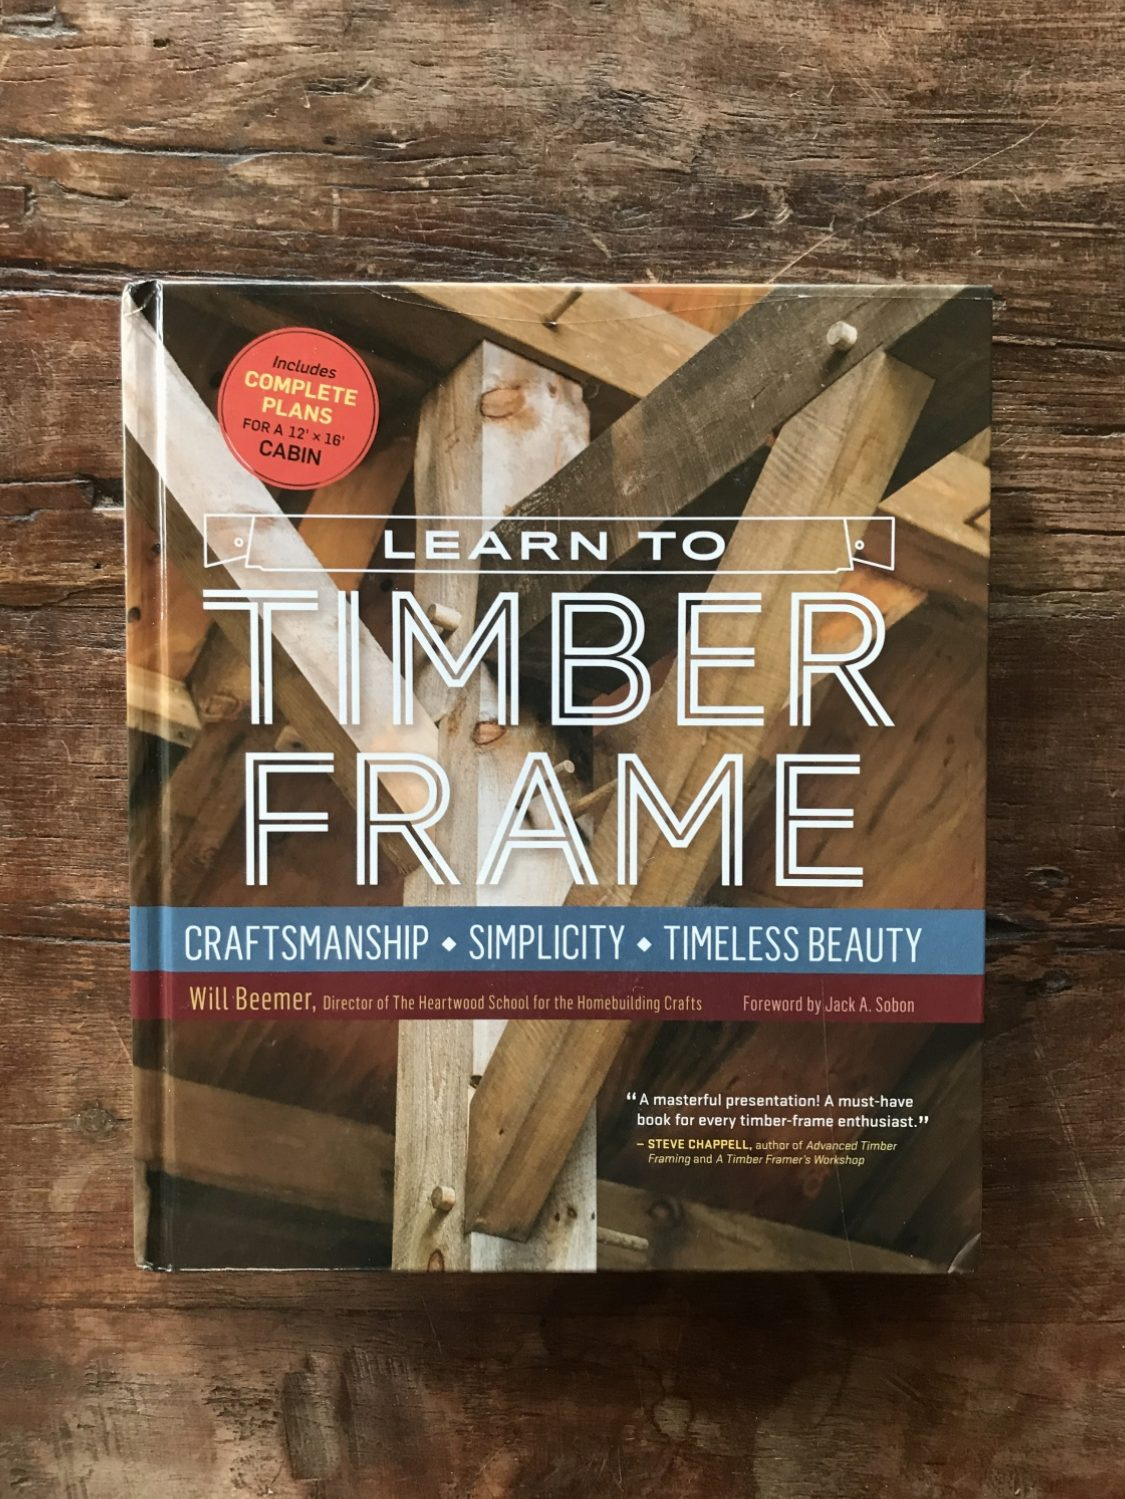 14a609c6ad4 Will Beemer of The Heartwood School for the Homebuilding Crafts was kind  enough to send us this amazing book on learning to build using the timber  framing ...